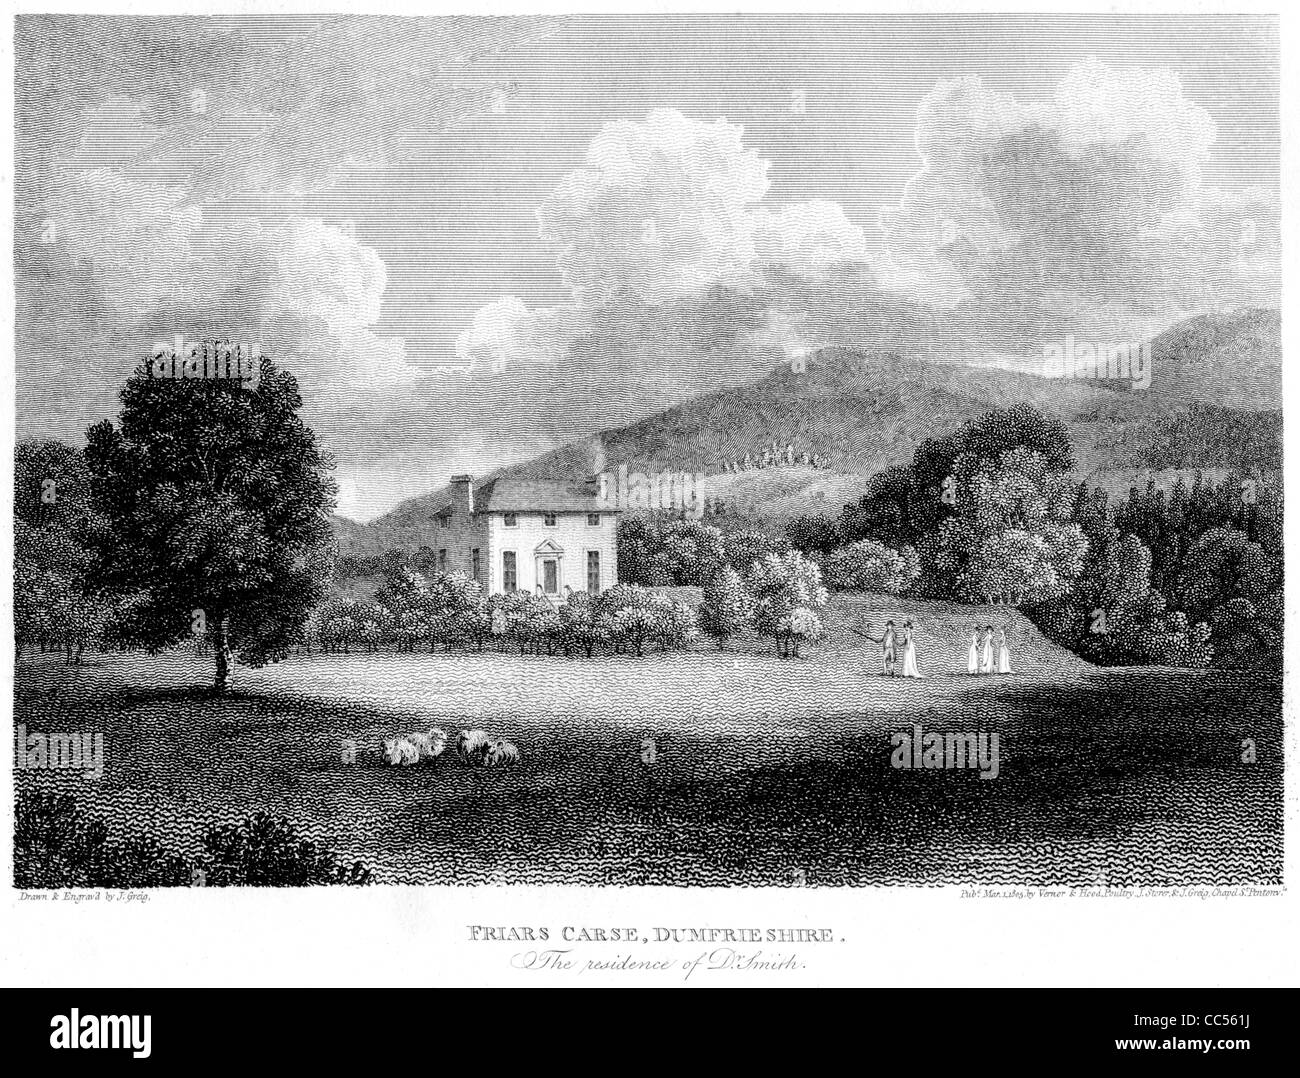 Friars Carse Dumfrieshire, an engraving from a book about Robert Burns published in 1805. Inspired Burns ballad - Stock Image